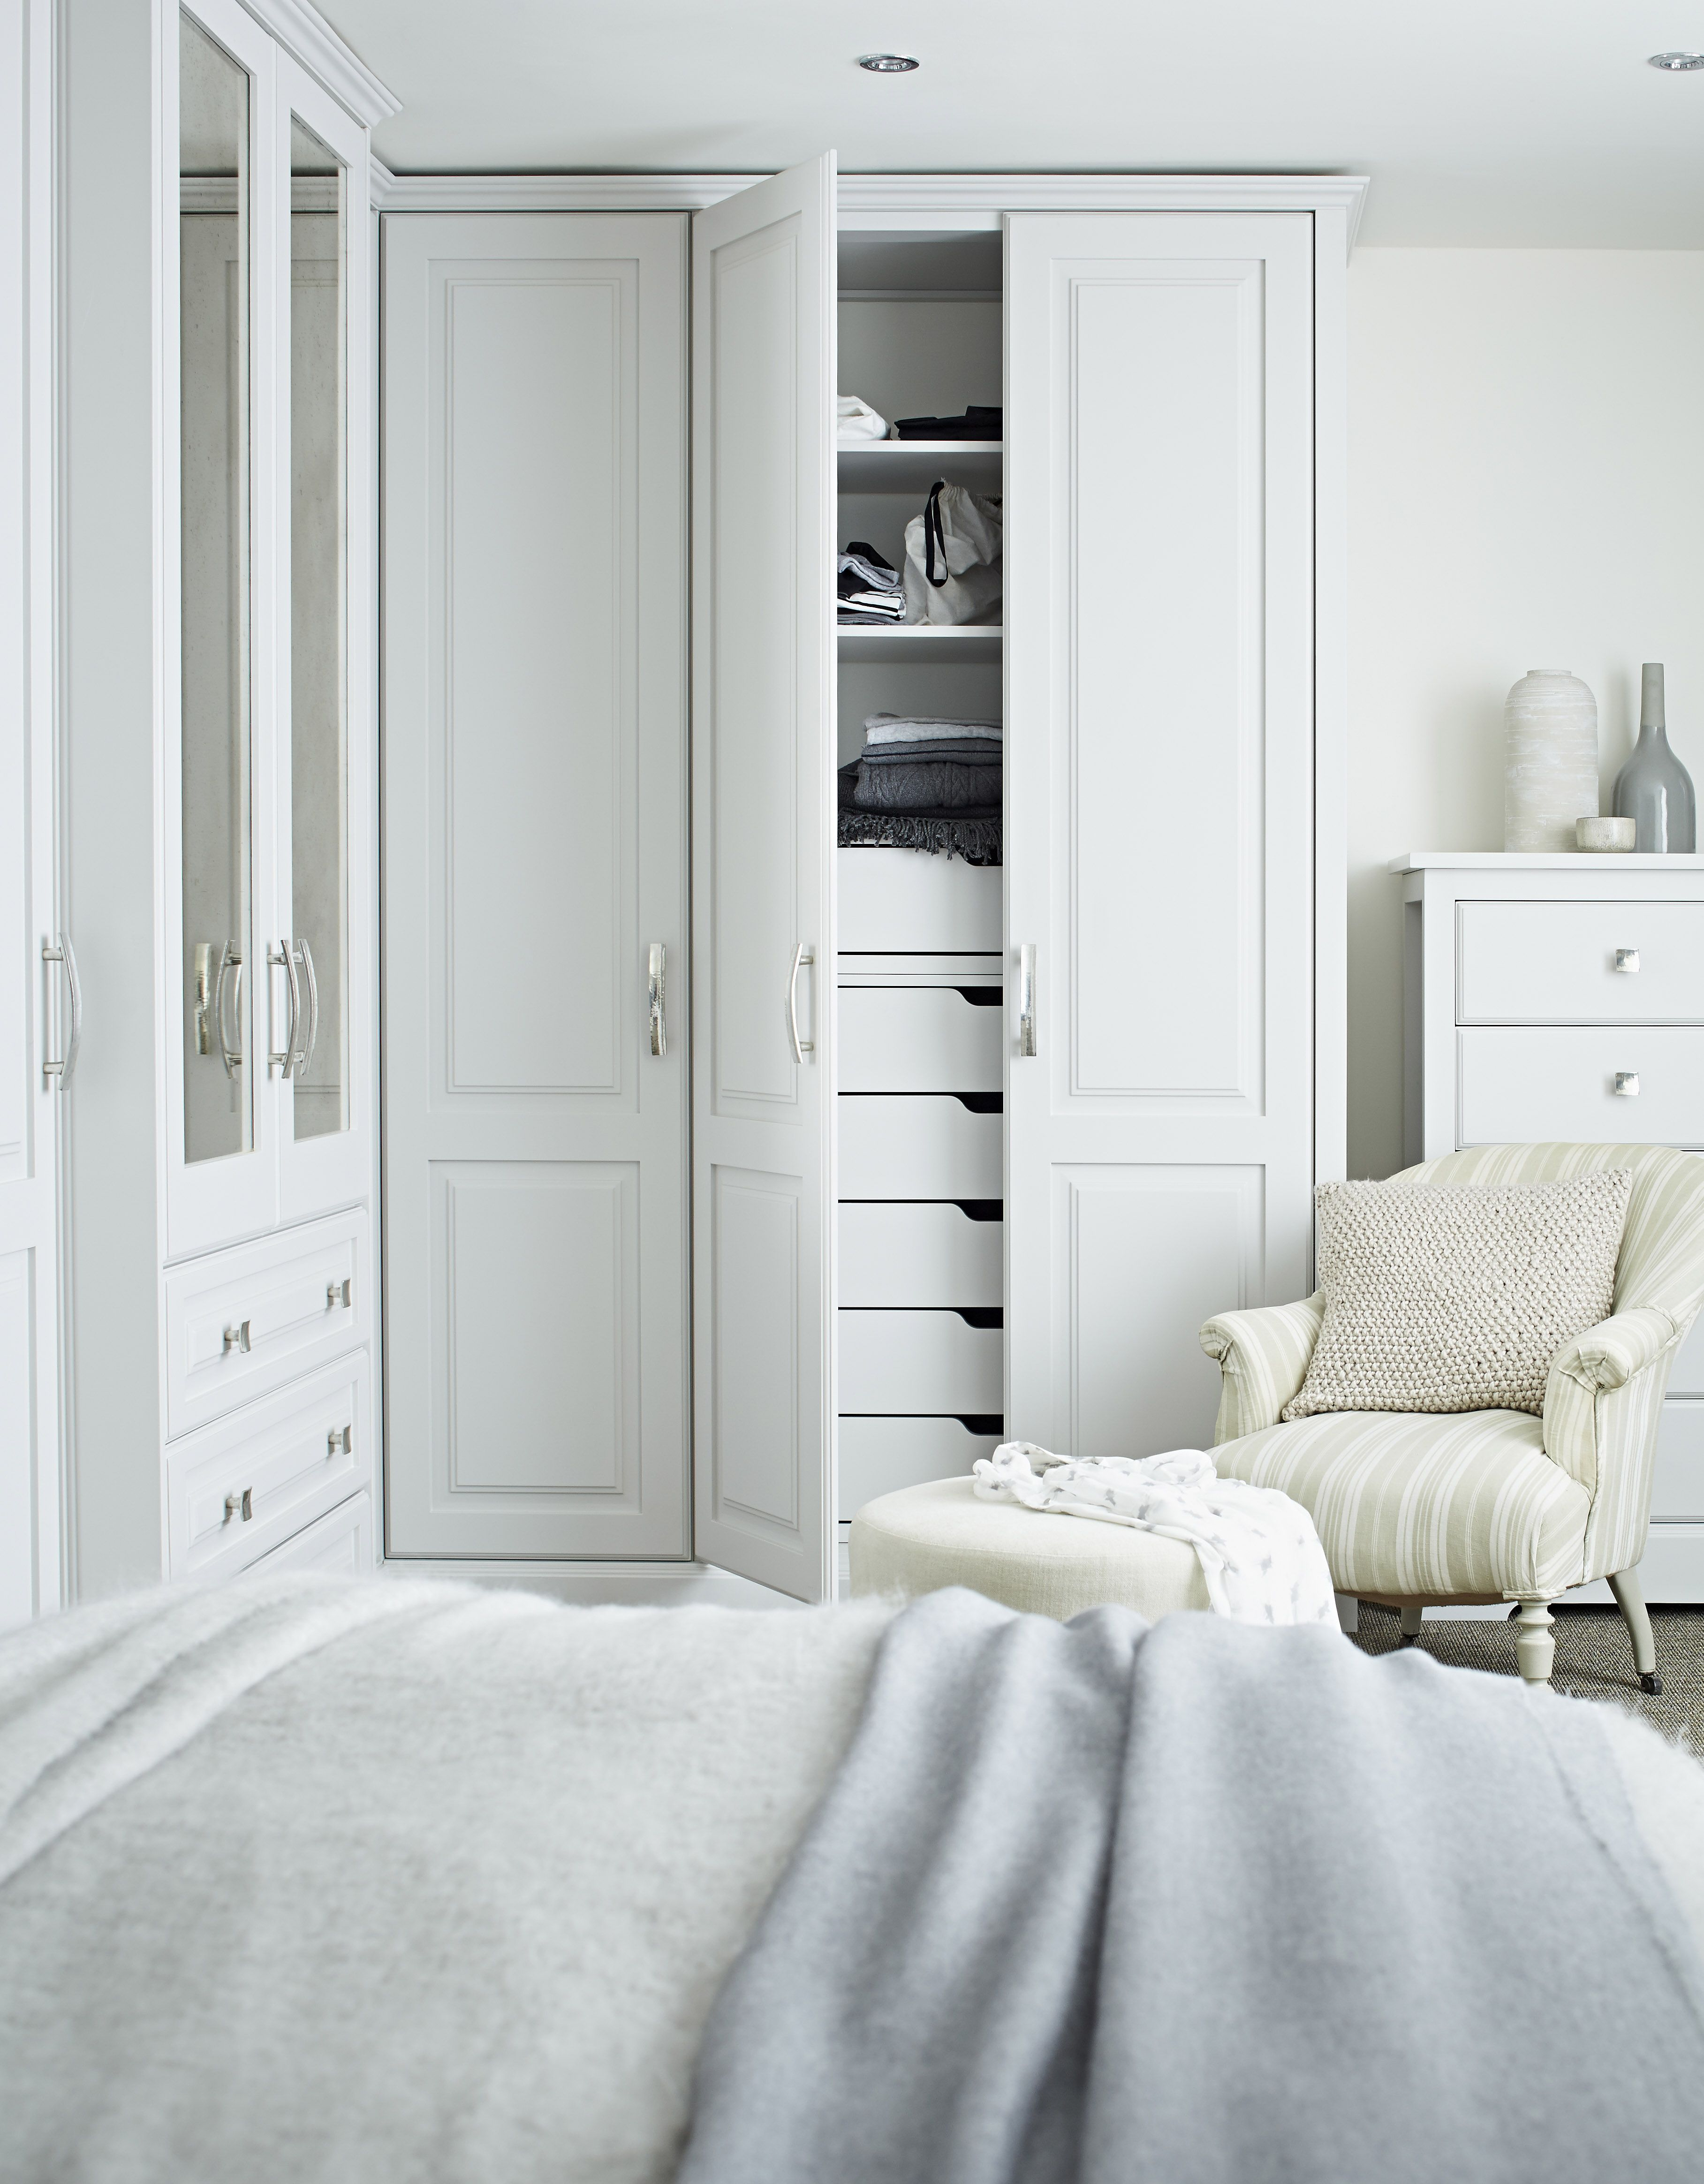 Sophisticated Bedroom Sleek Sophisticated Bedroom Style Artisan Bedroom Furniture